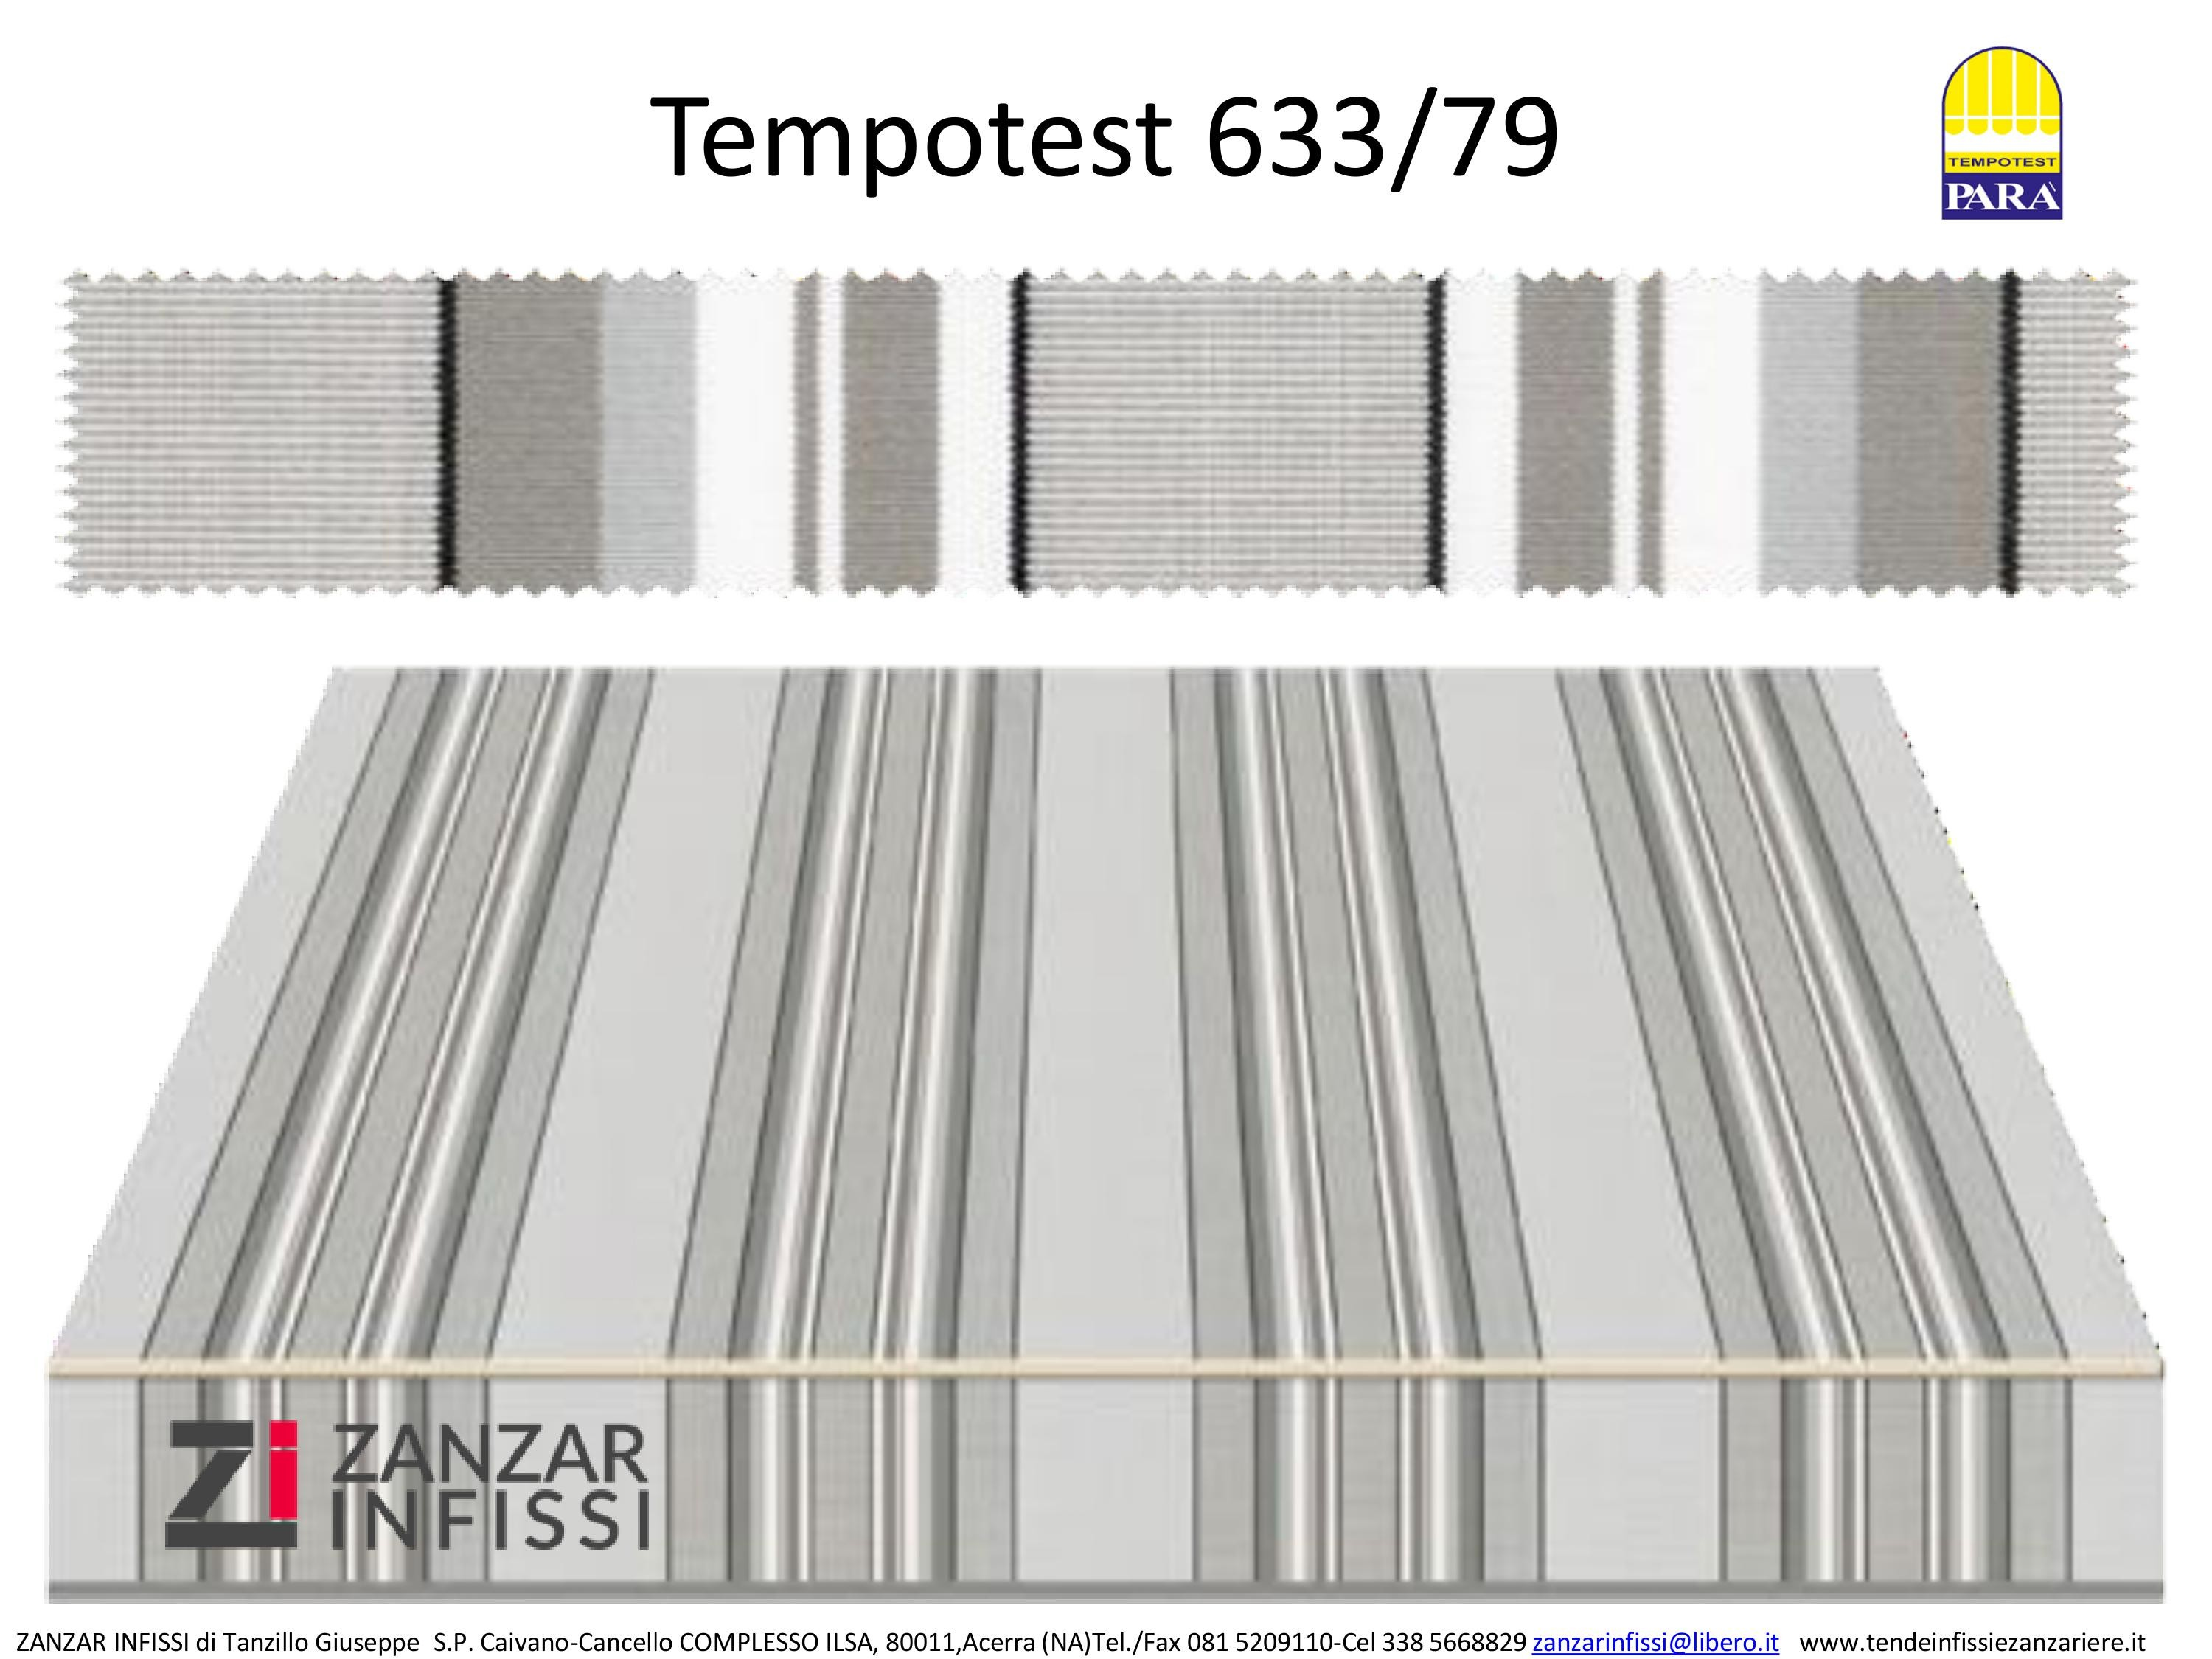 Tempotest 633/79